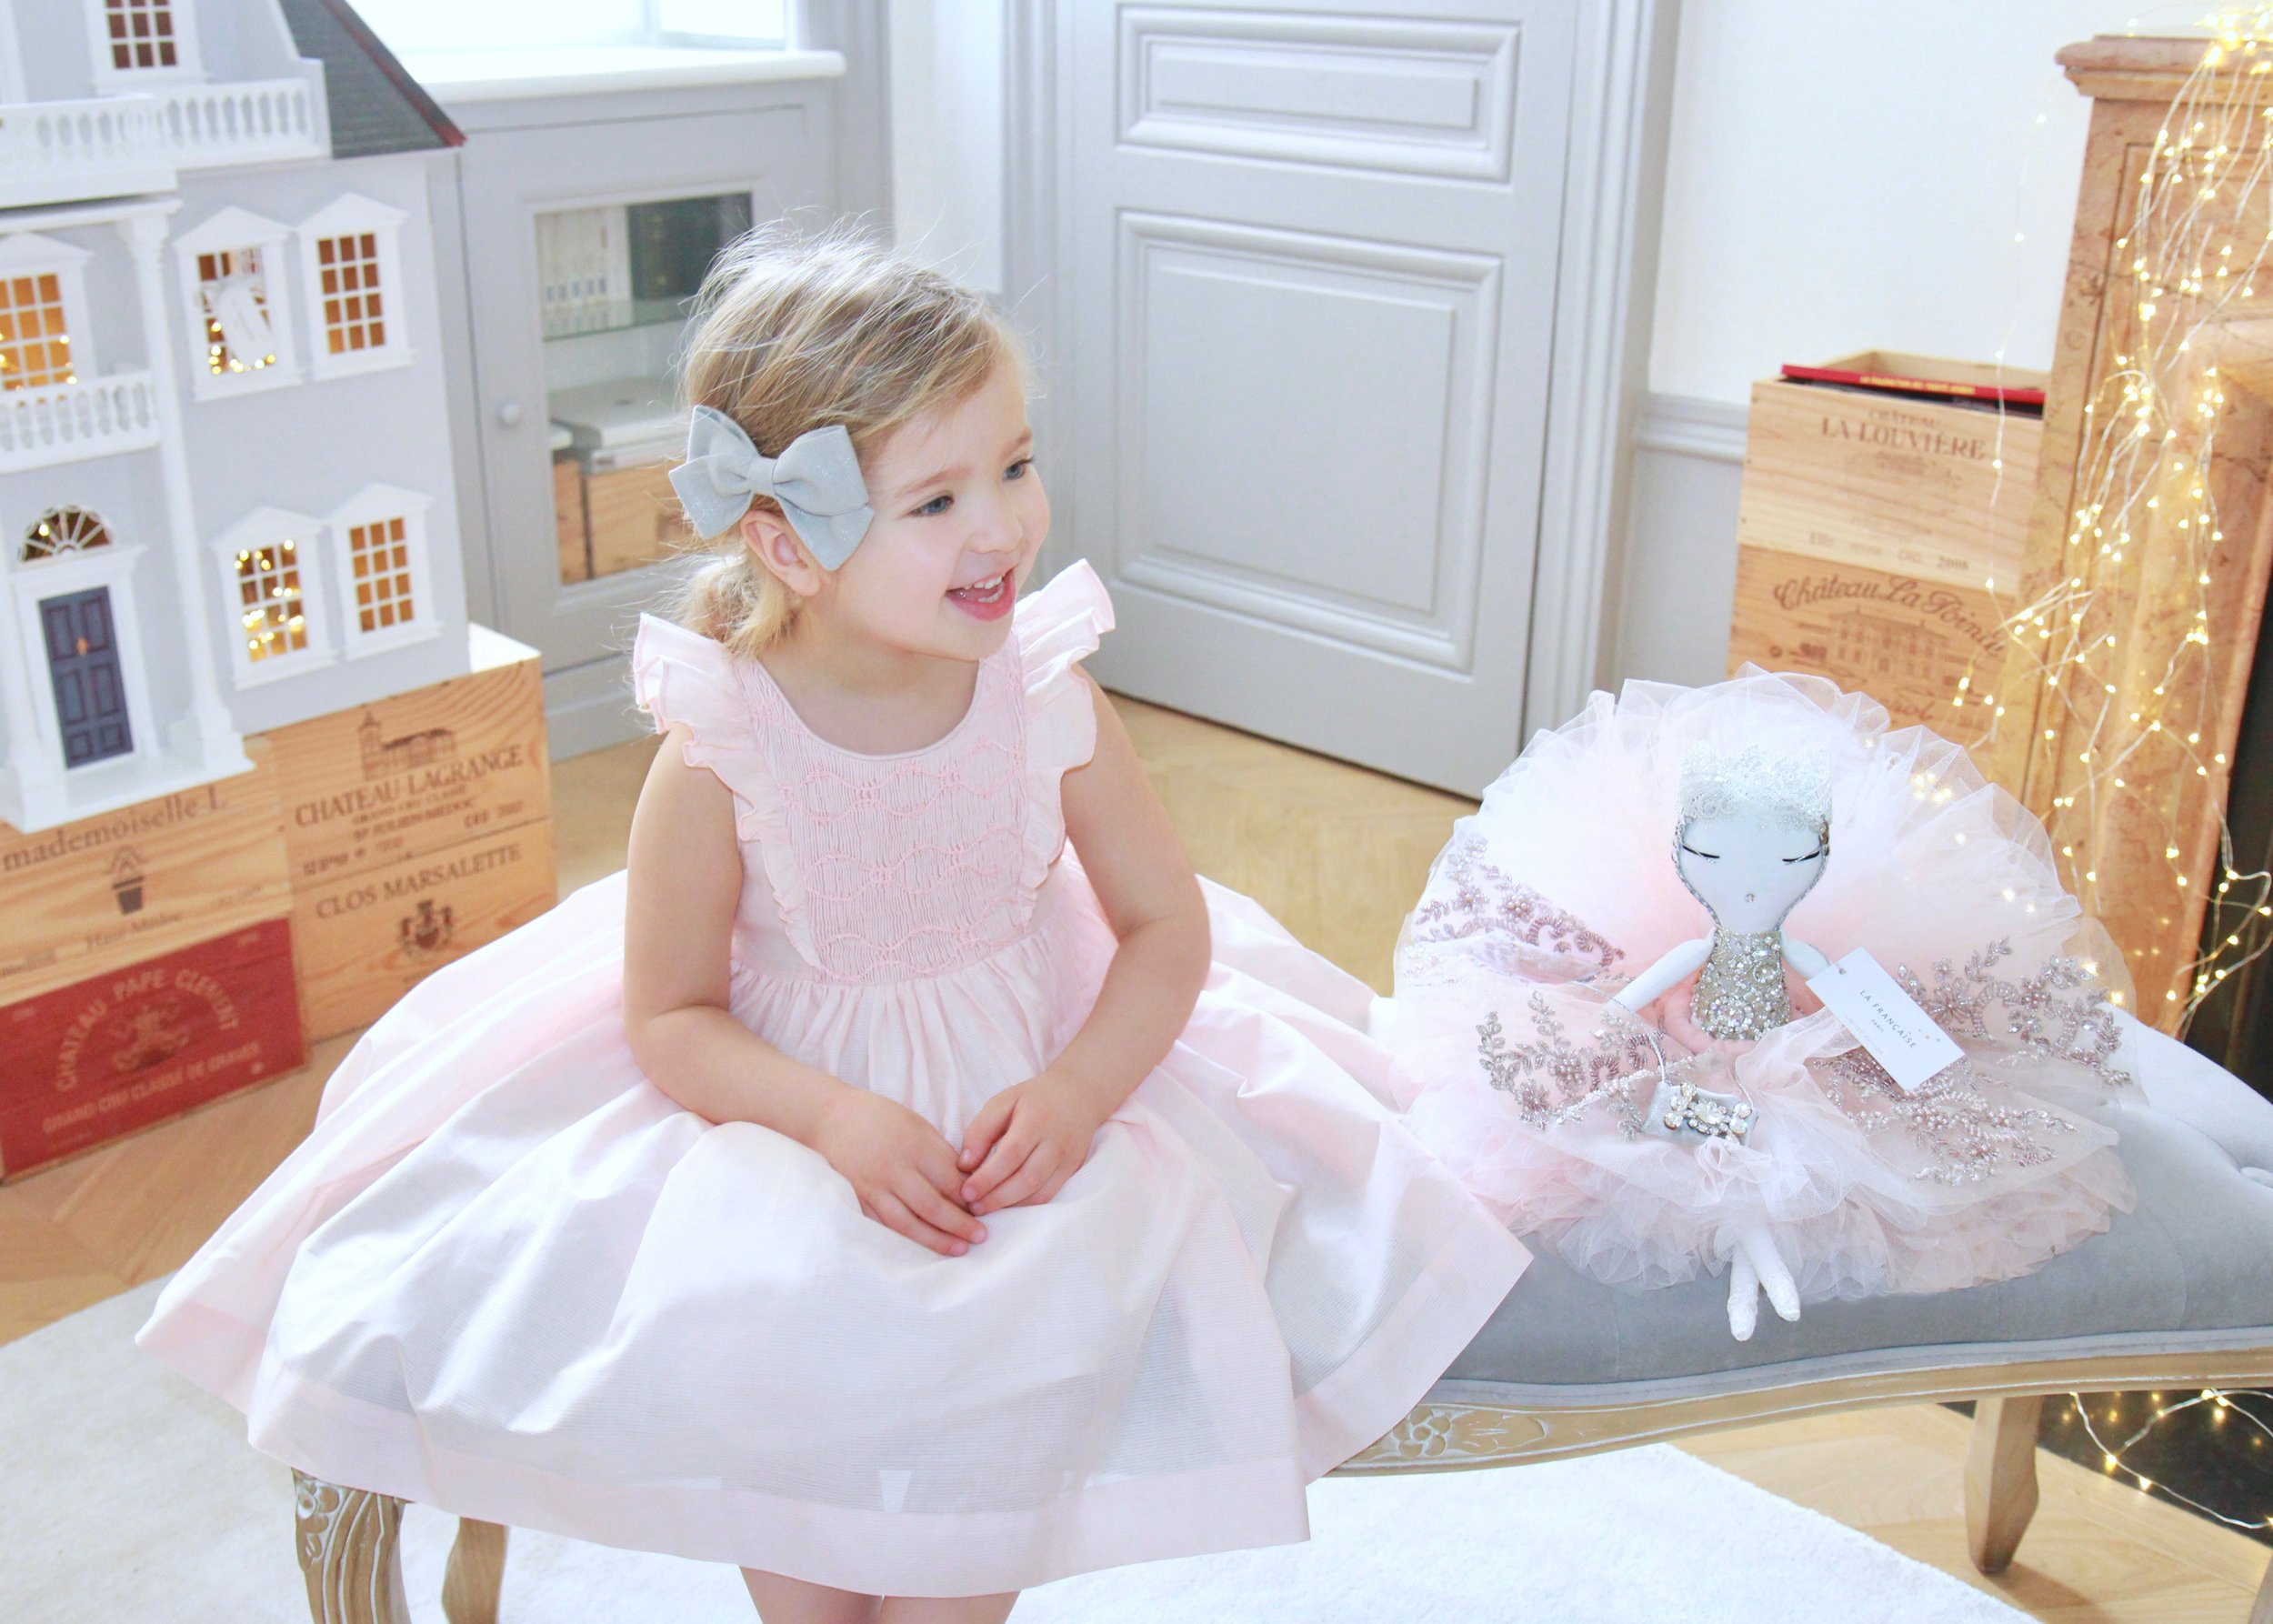 Handmade Preppy Orme smocked dress - classic chic Parisian children's boutique